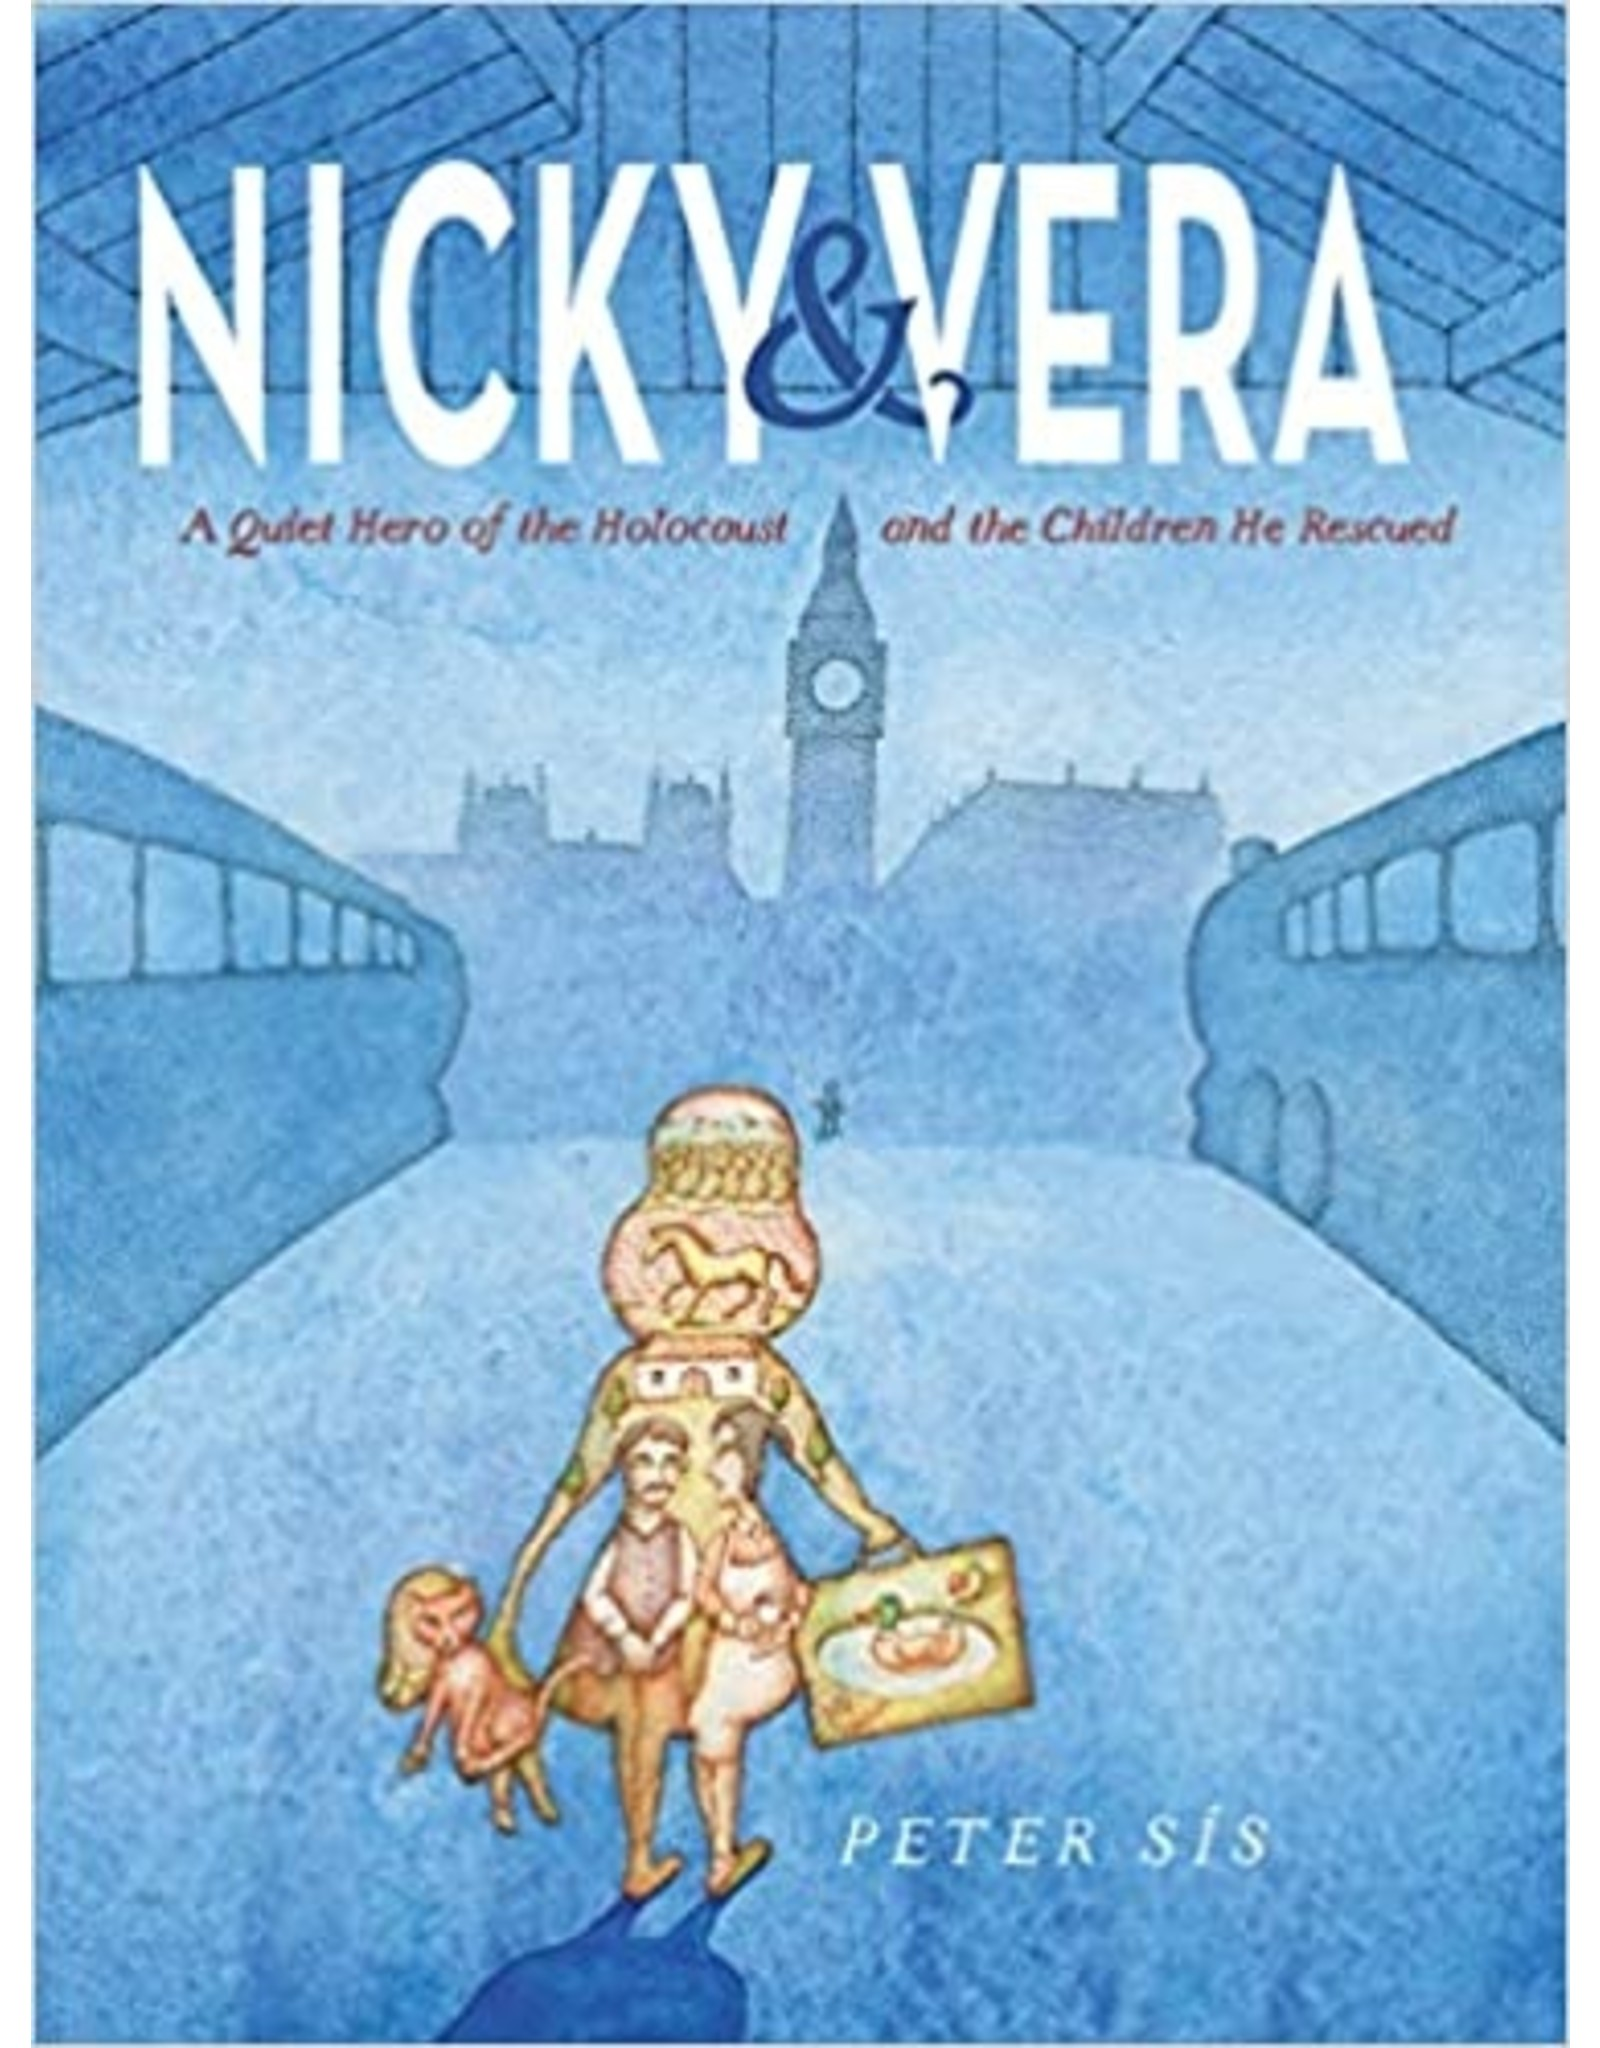 Books Nicky & Vera: A Quiet Hero of the Holocaust and the Children He Rescued by Peter Sis